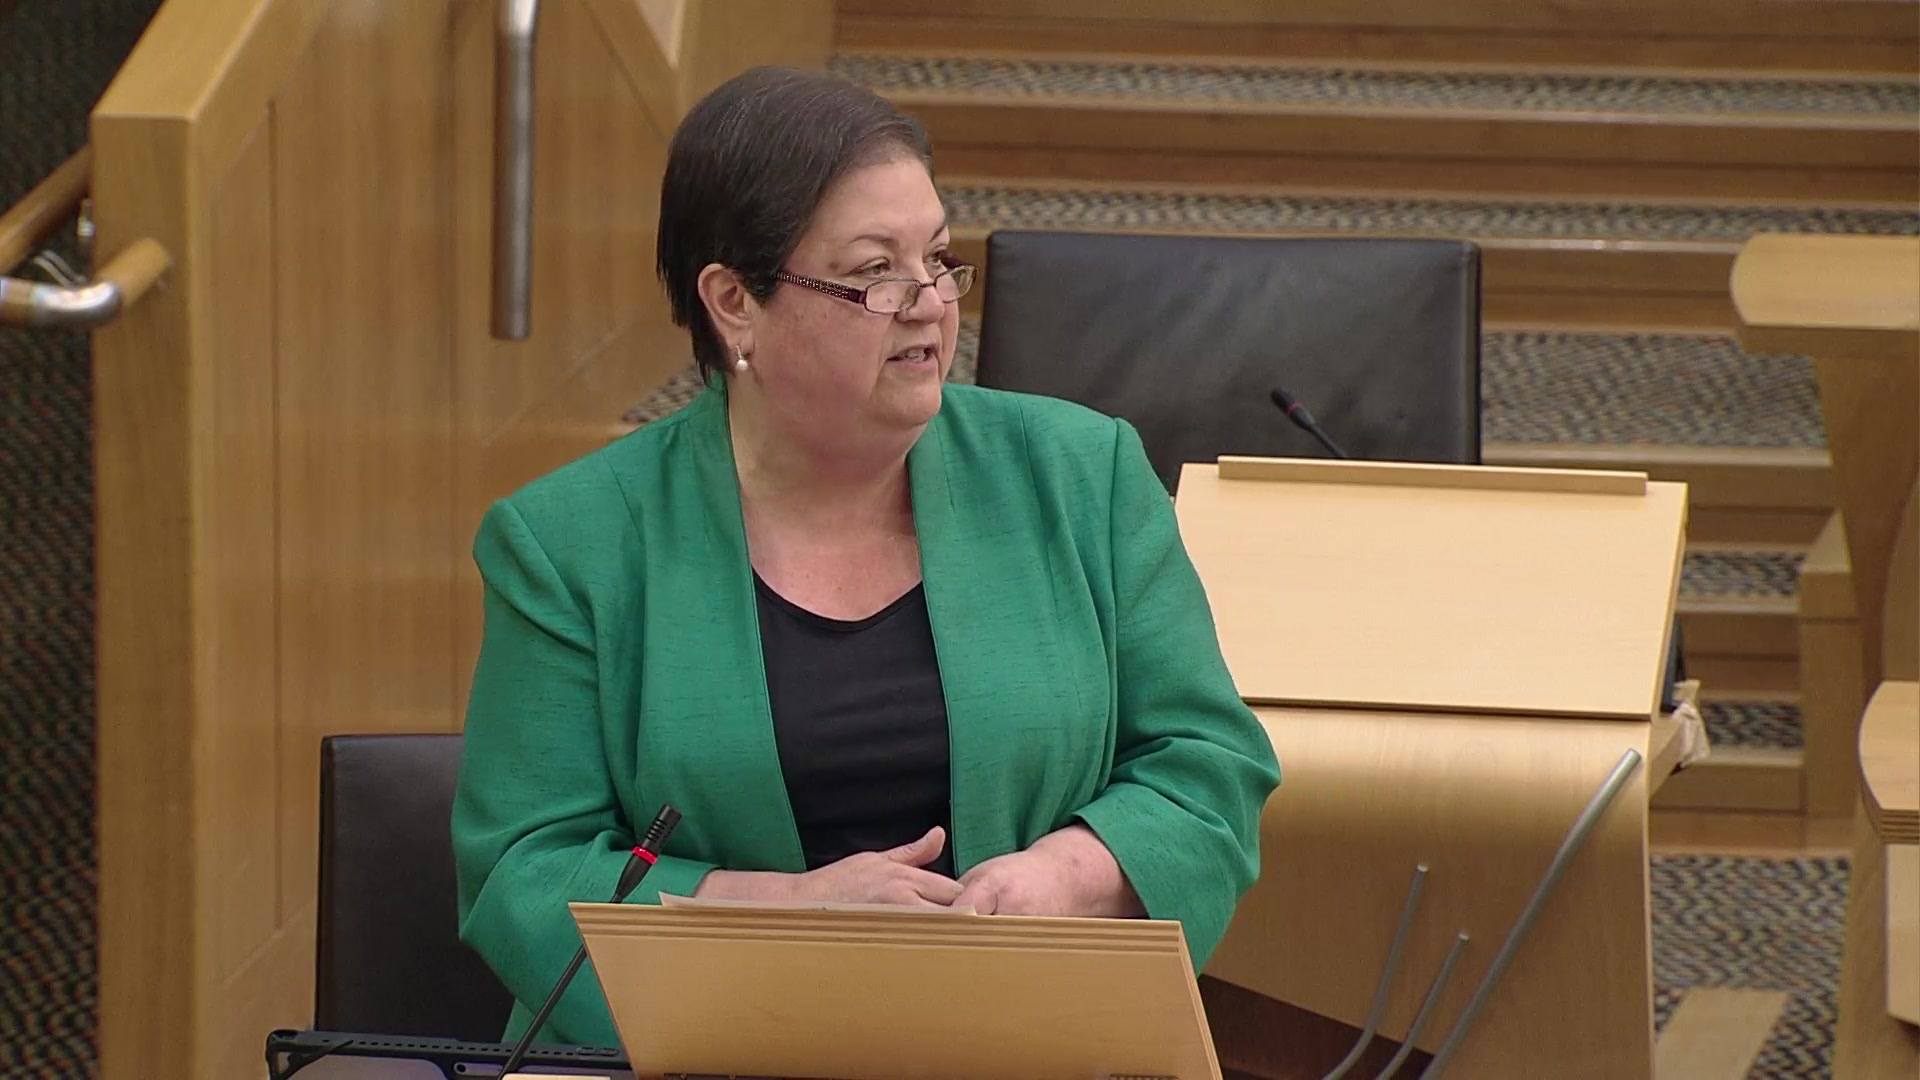 Scottish Labour Party Debate: Taking Action on the NHS and Ambulance Crisis